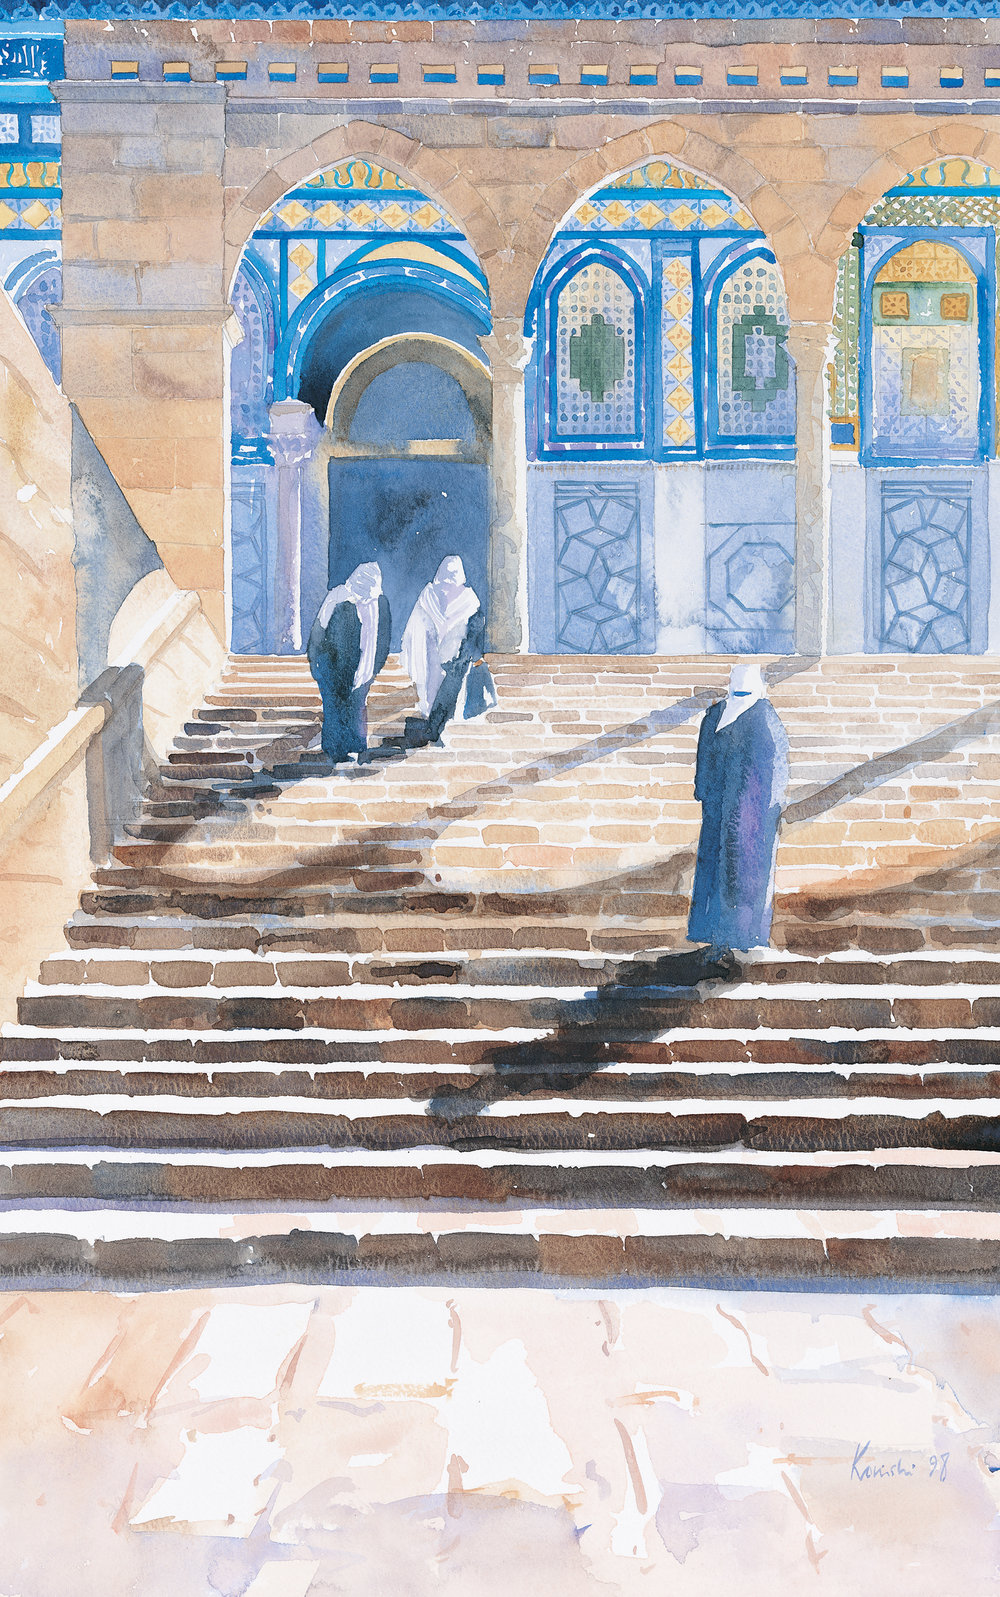 Steps on Haram-al Sharif